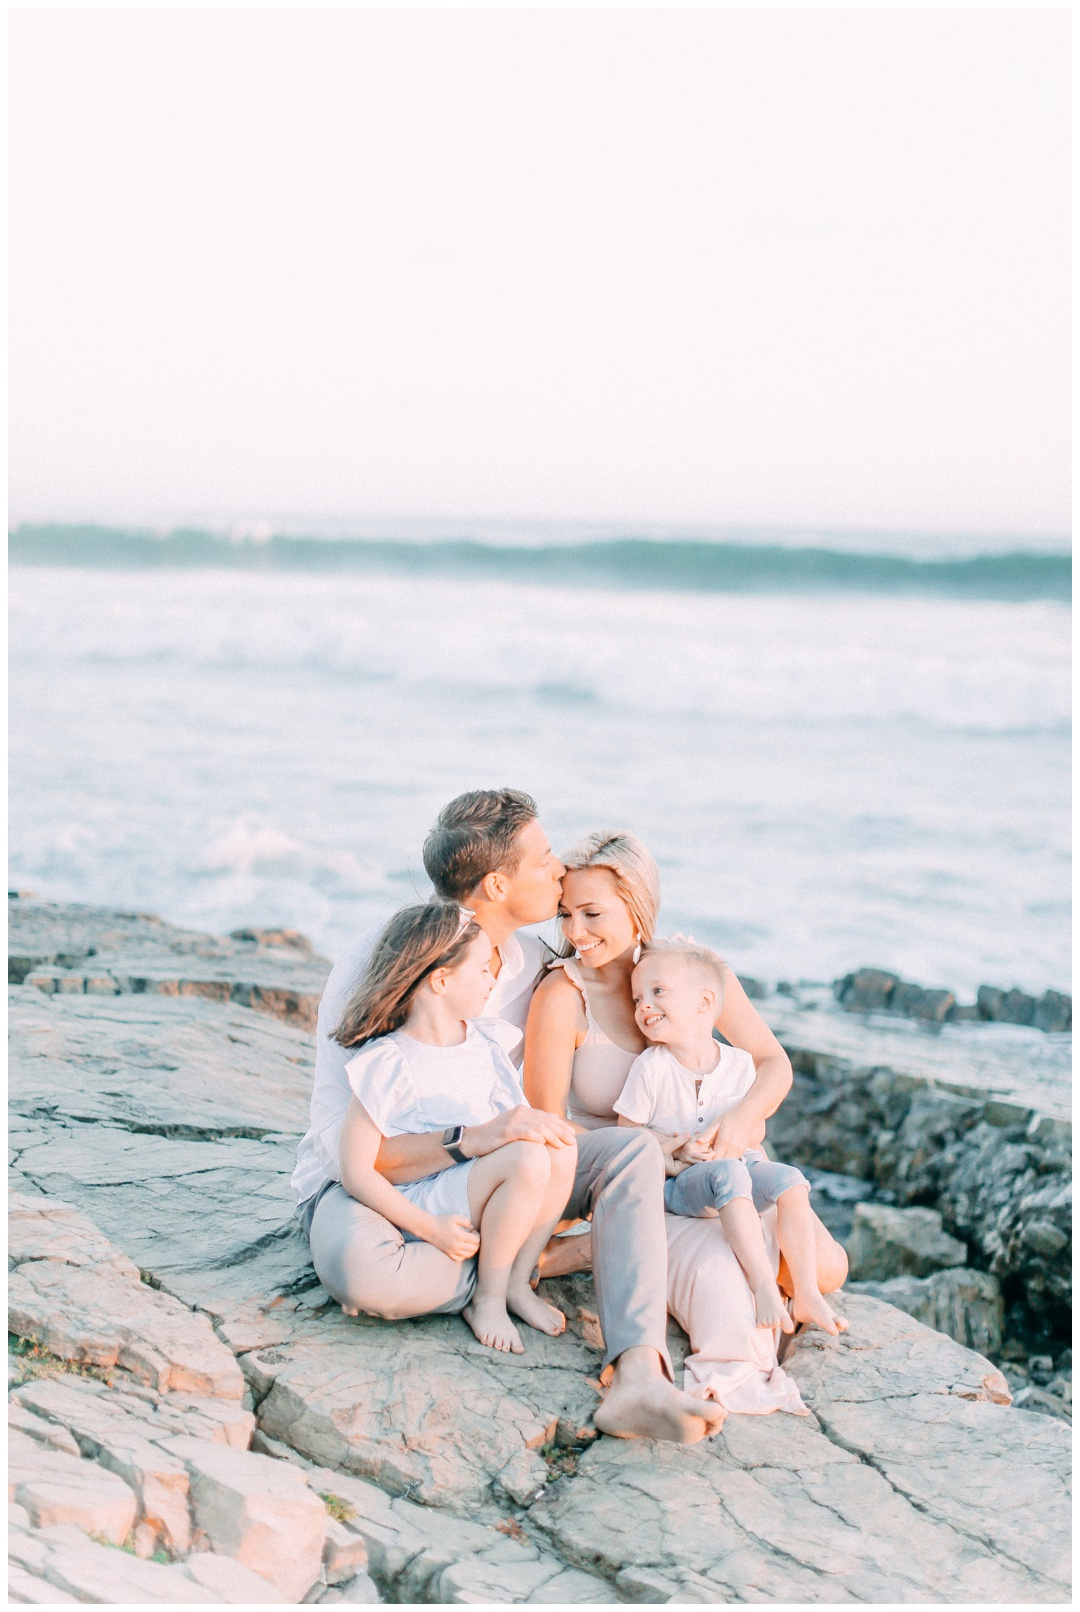 Newport_Beach_Family_Photographer_Orange_County_Family_Photography_Cori_Kleckner_Photography_Orange_County_Family_Photographer_Beach_Family_Session_1167.jpg